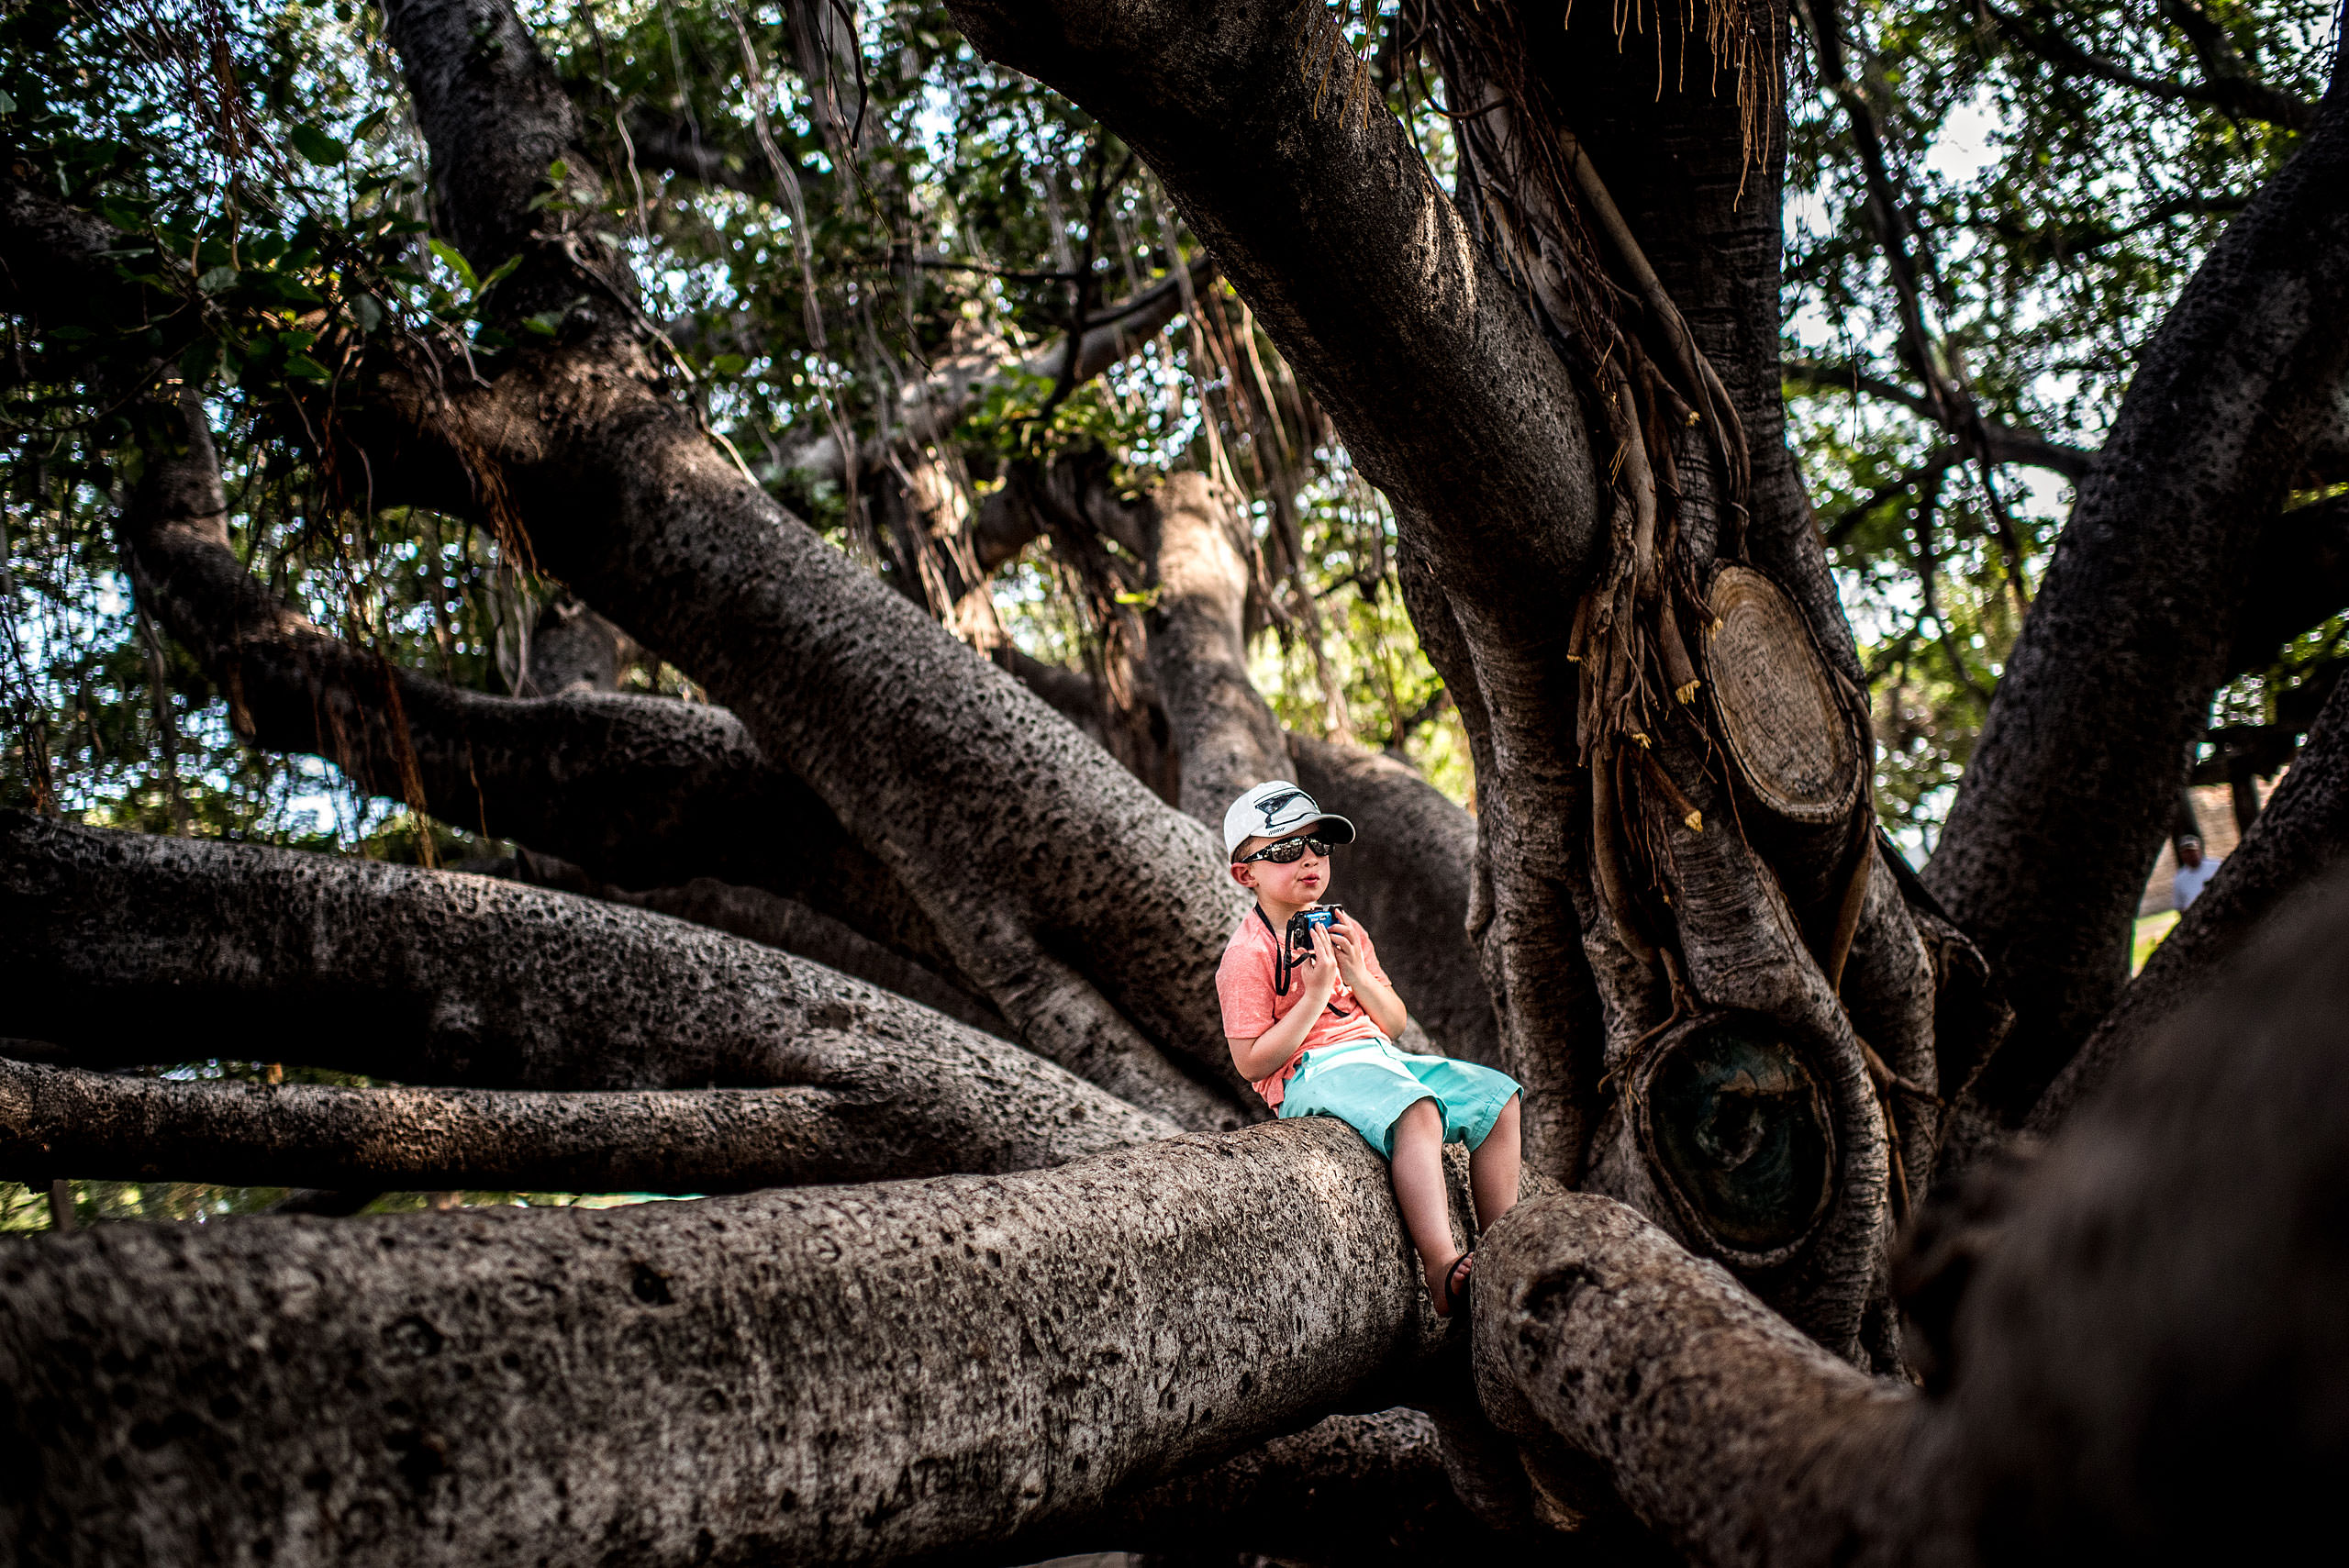 a young boy sitting in a big tree holding his camera by destination family photographers sean leblanc